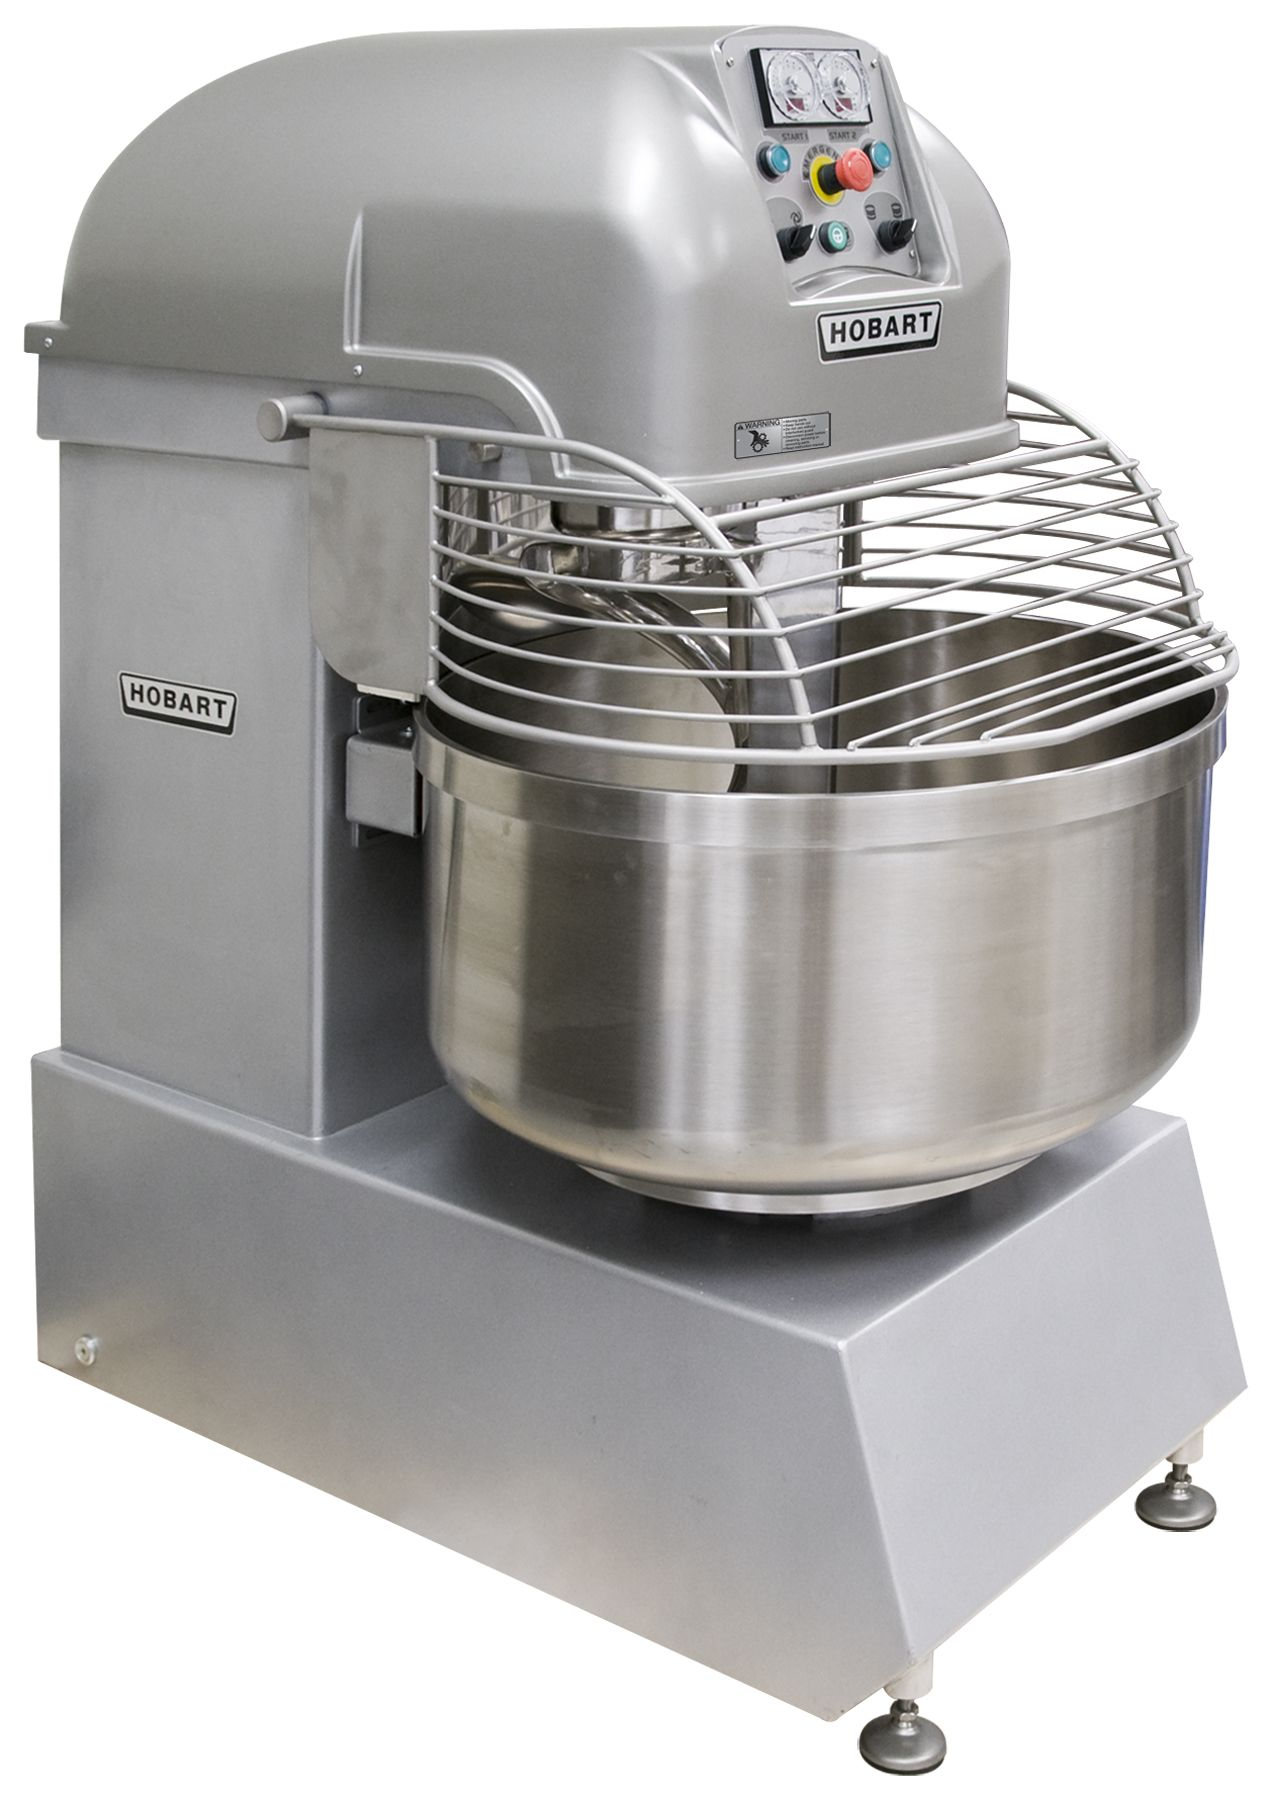 Hobart Spiral Mixers Designed Specifically For The Unique High